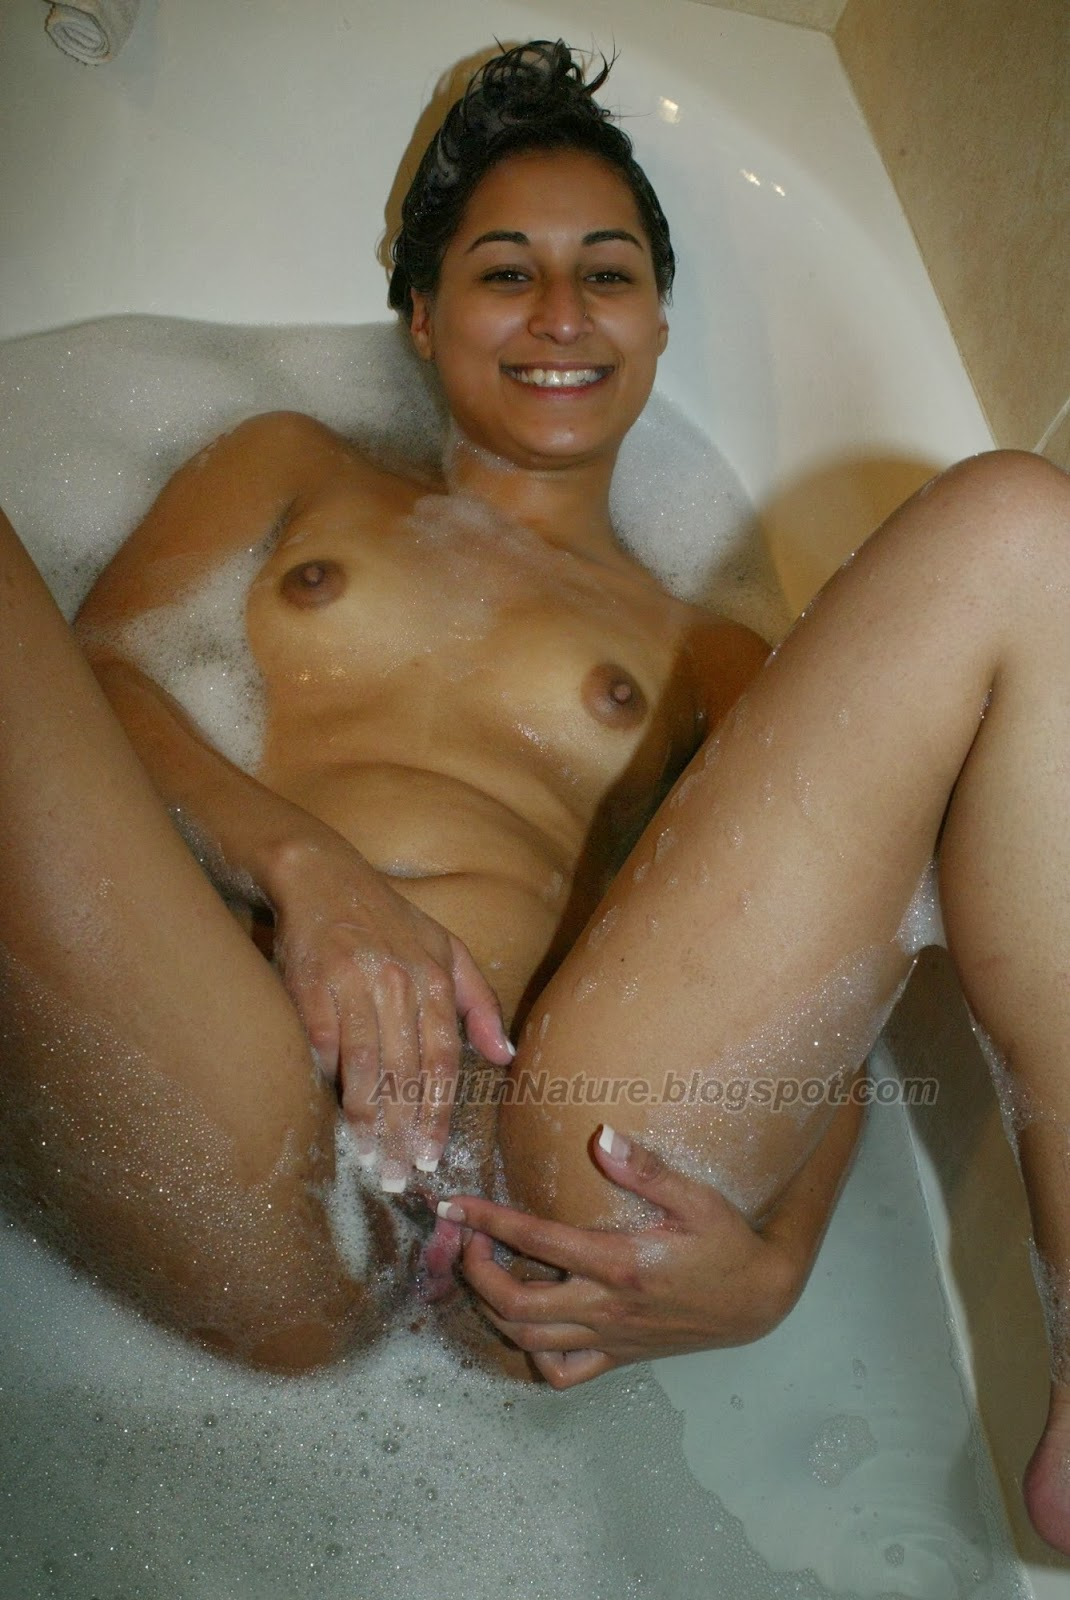 Punjabi photo hd nude beautiful most girl